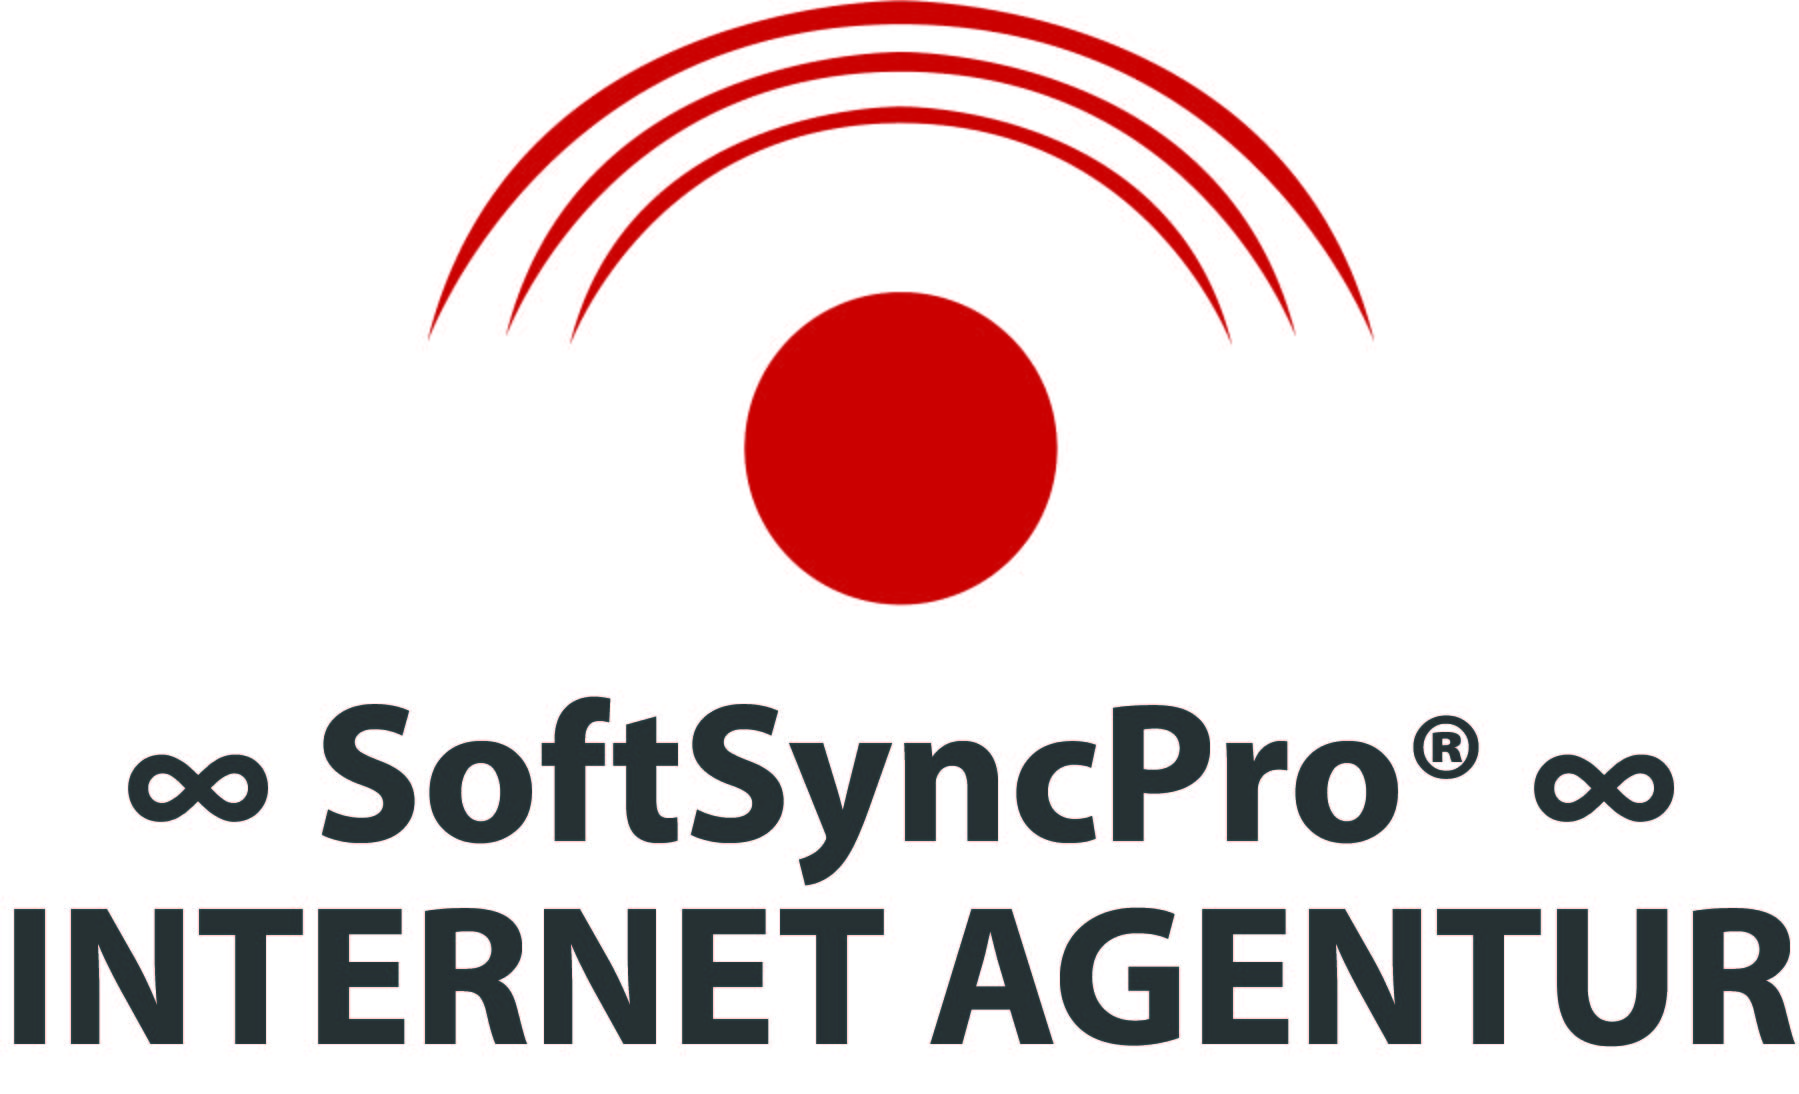 SoftSyncPro